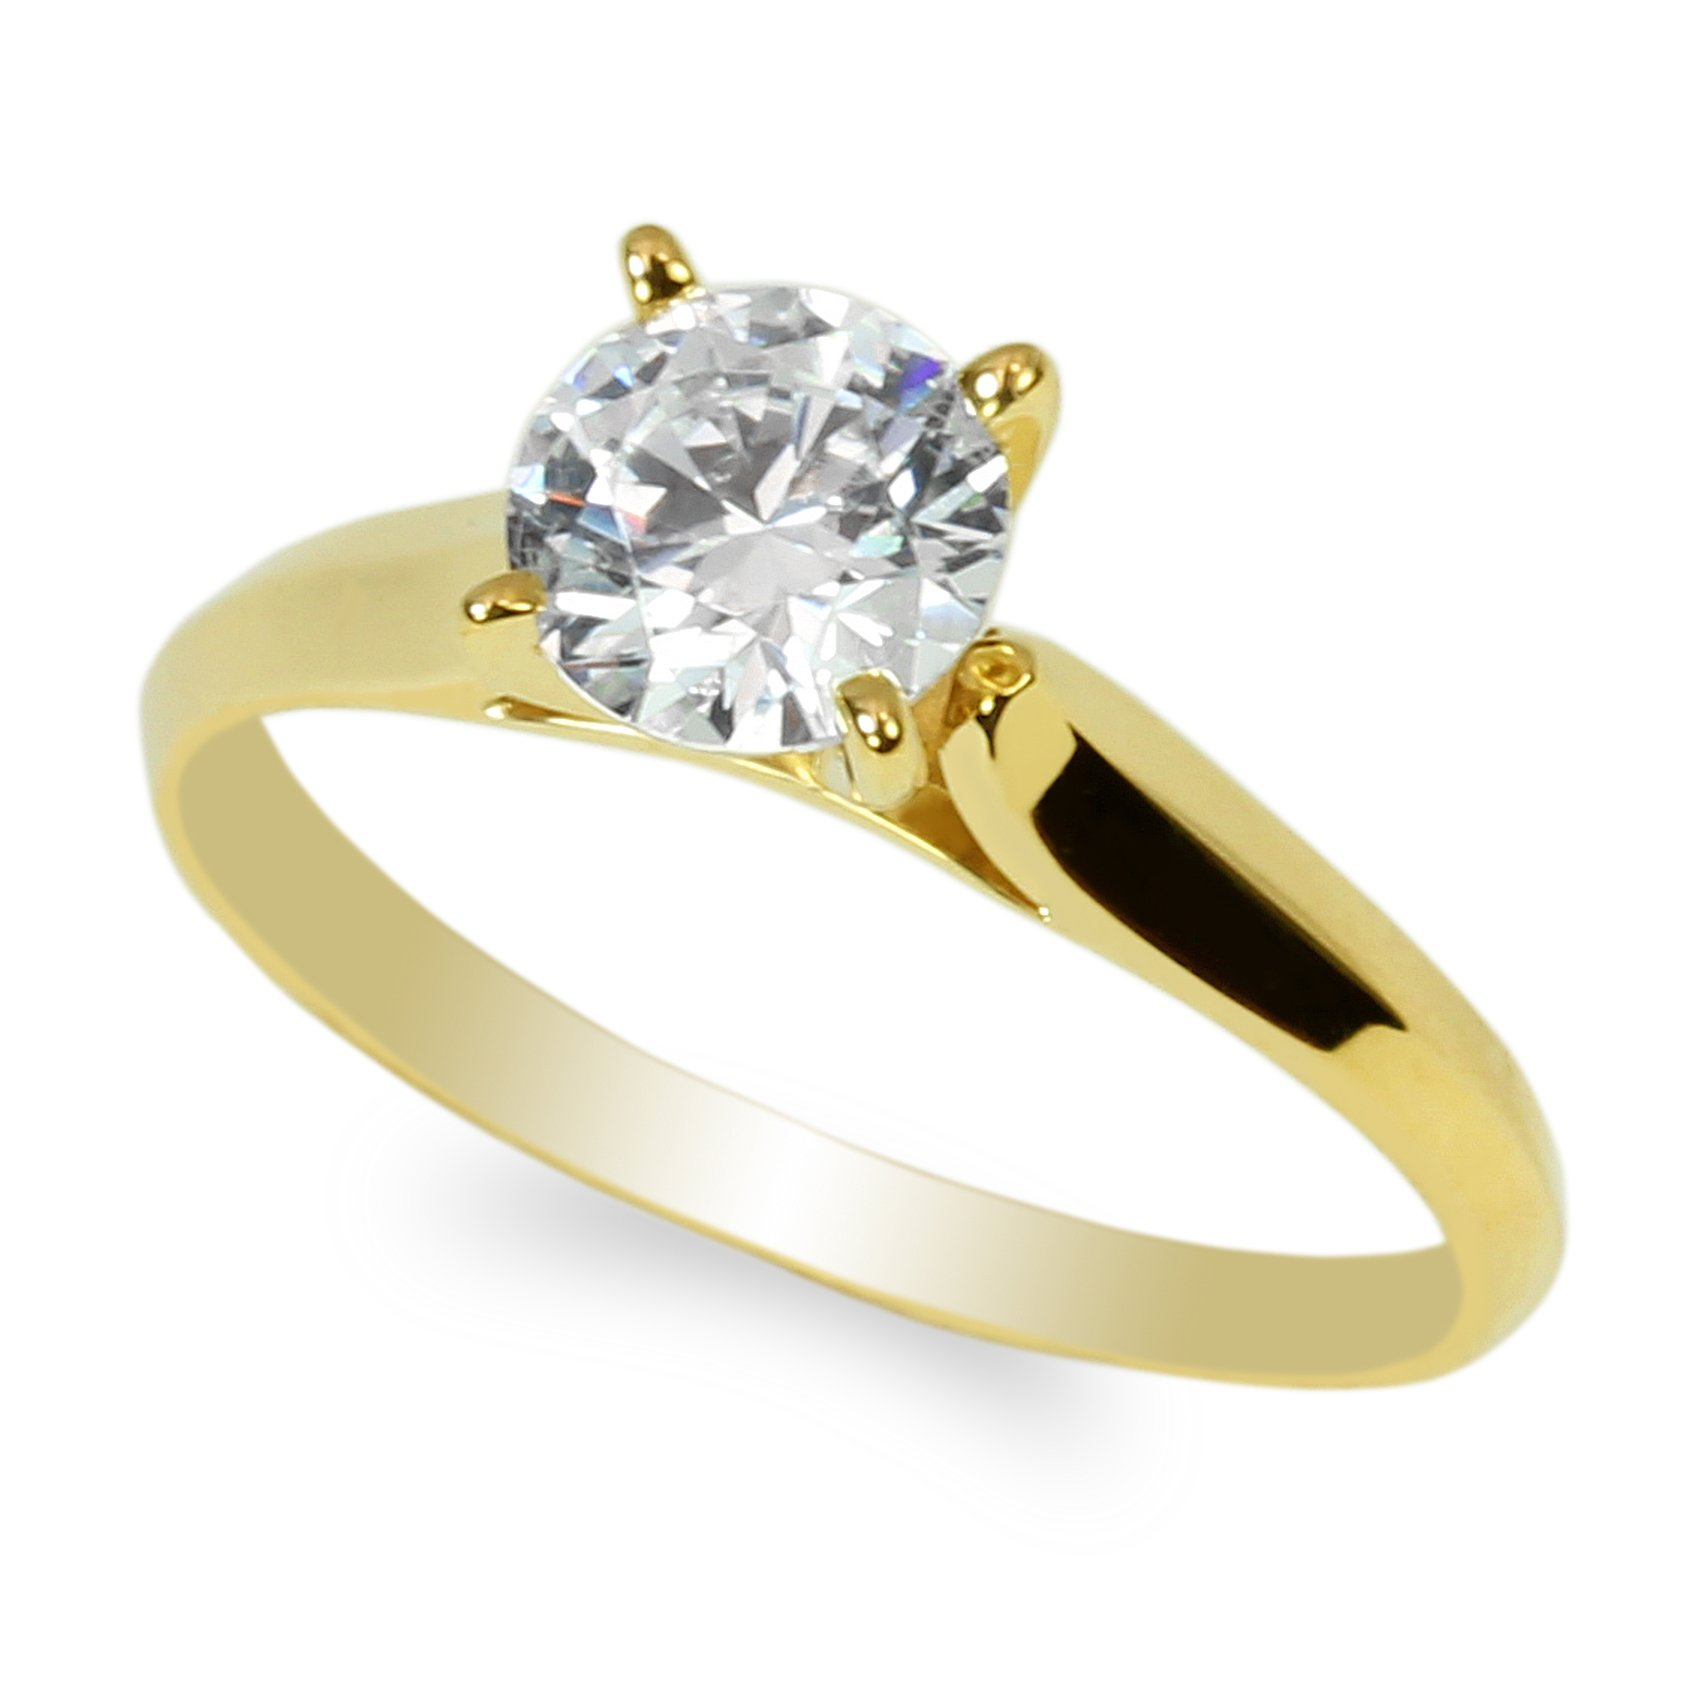 JamesJenny 14K Yellow Gold 1.0ct Round CZ Classic Solid Engagement & Wedding Solitaire Ring Size 6 by JamesJenny